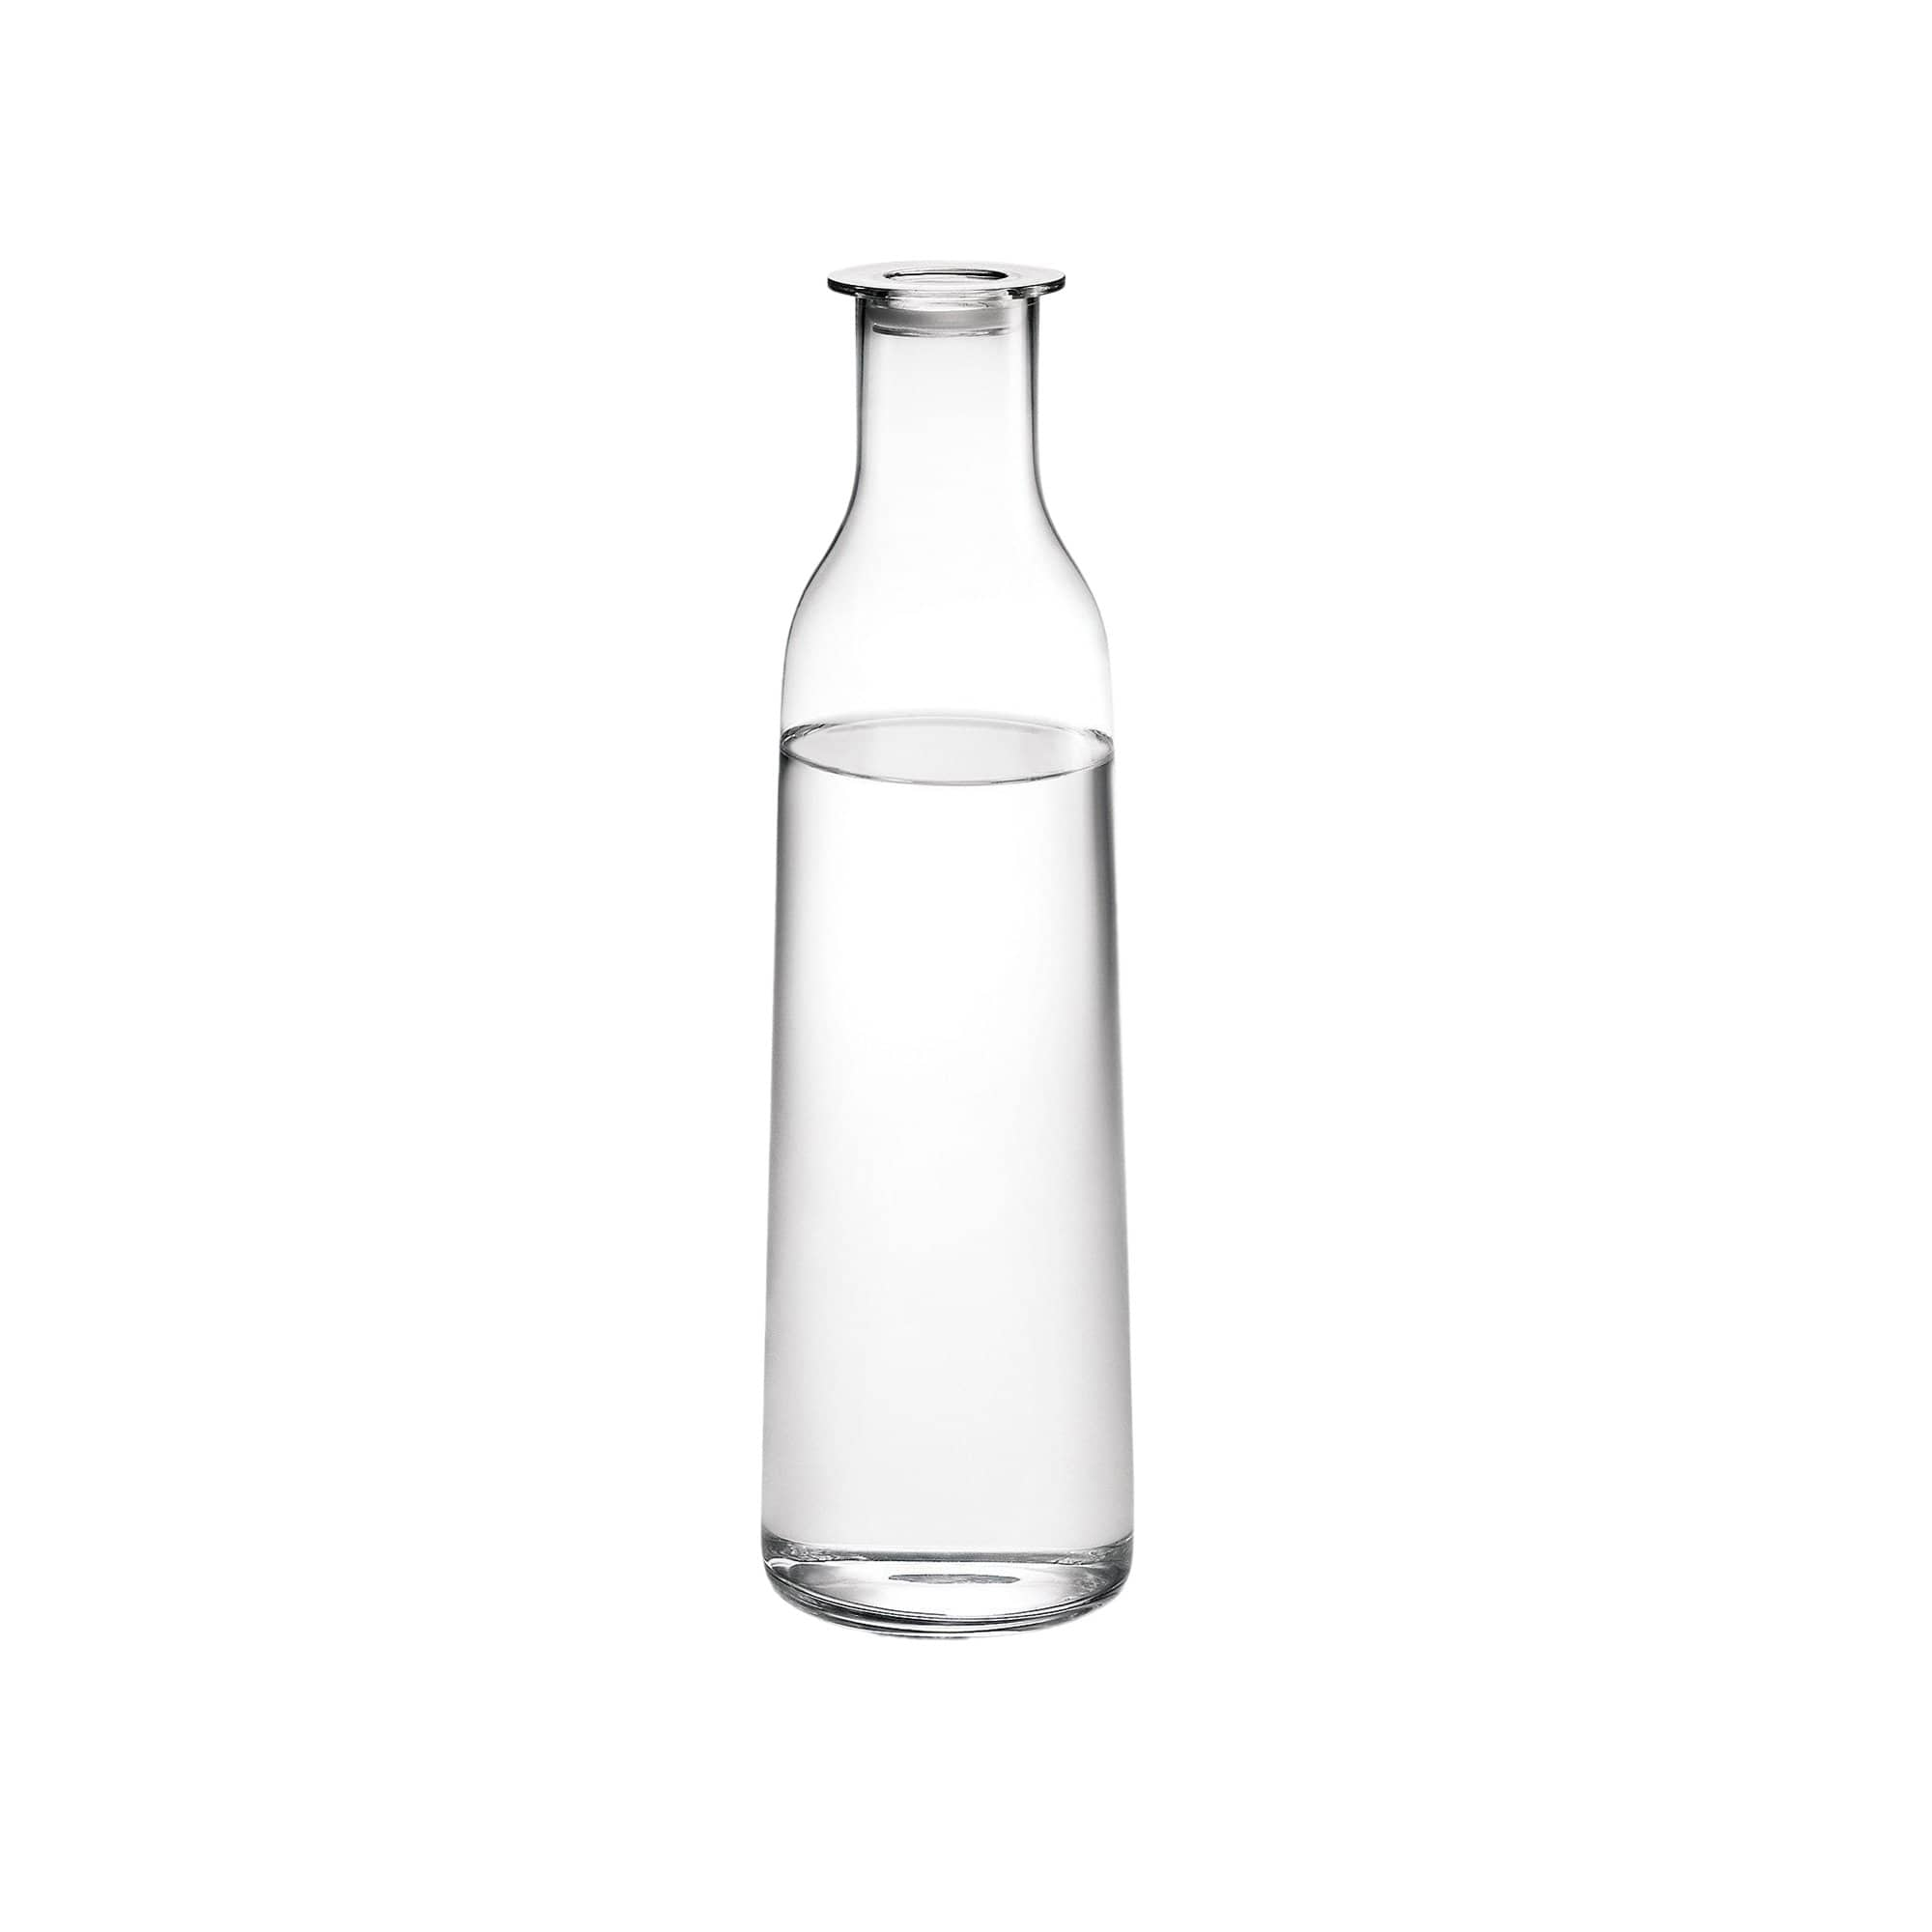 Holmegaard Glassware Holmegaard Minima Bottle with lid, Large